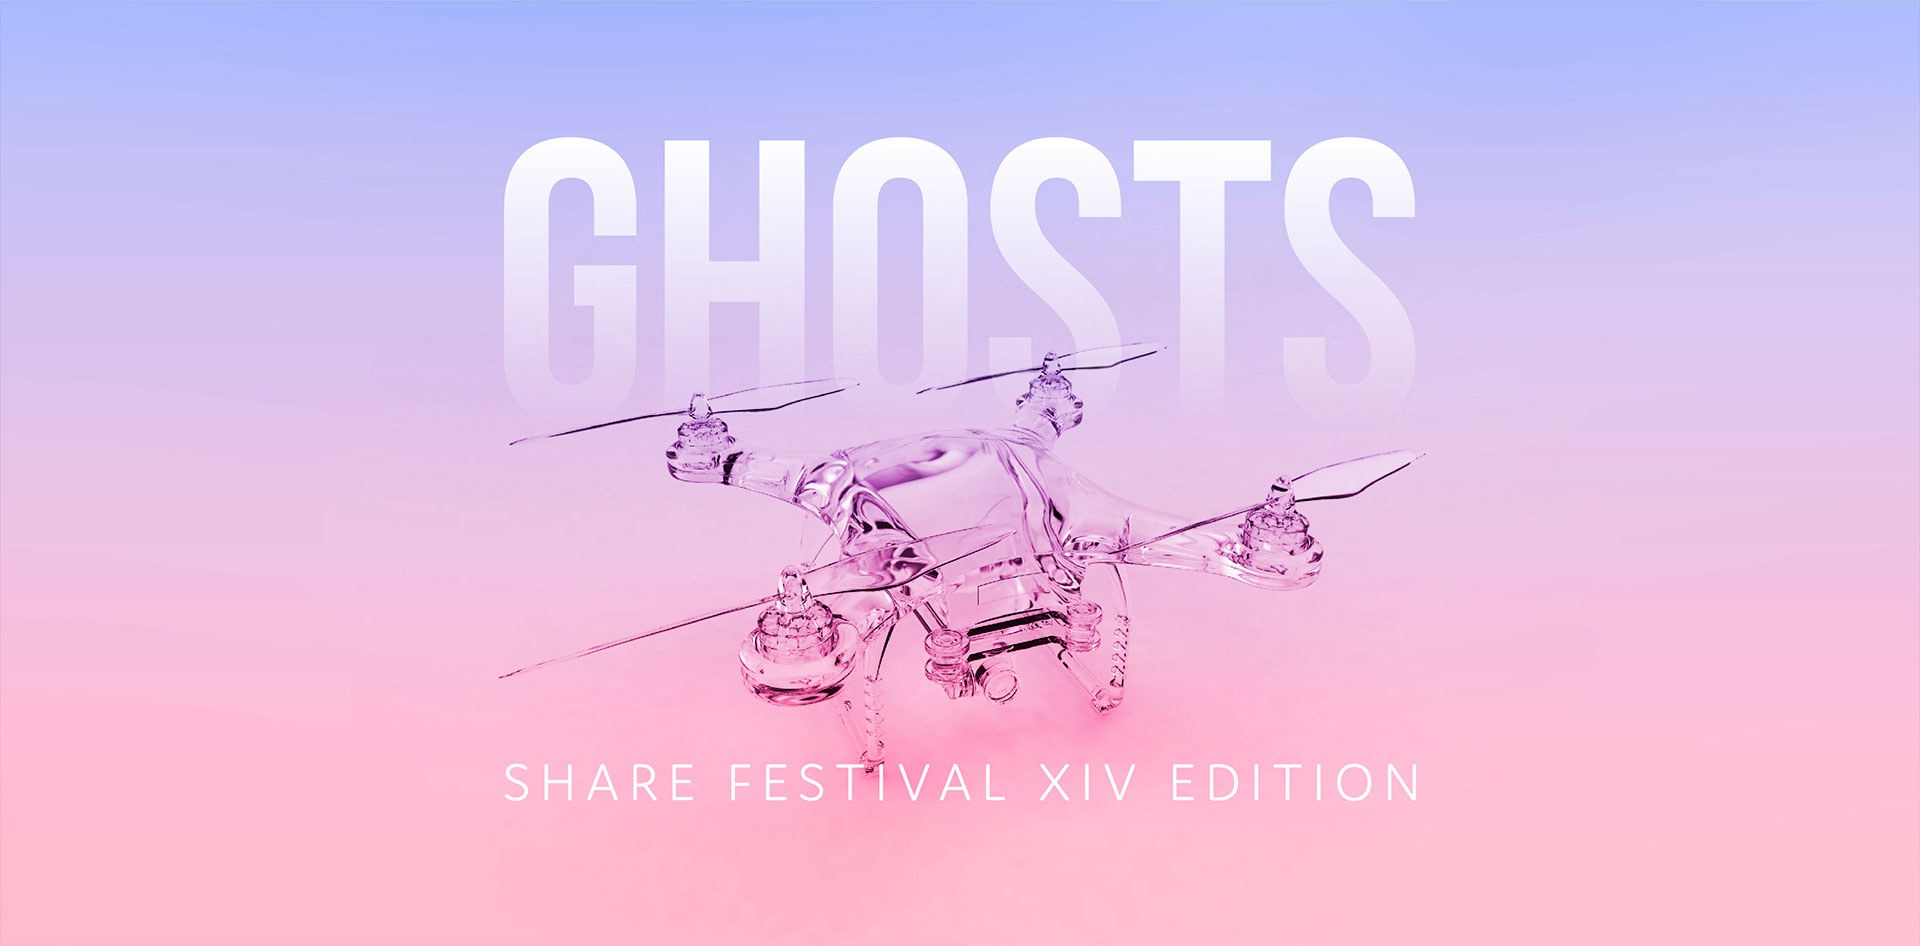 Share Festival XIV | GHOSTS